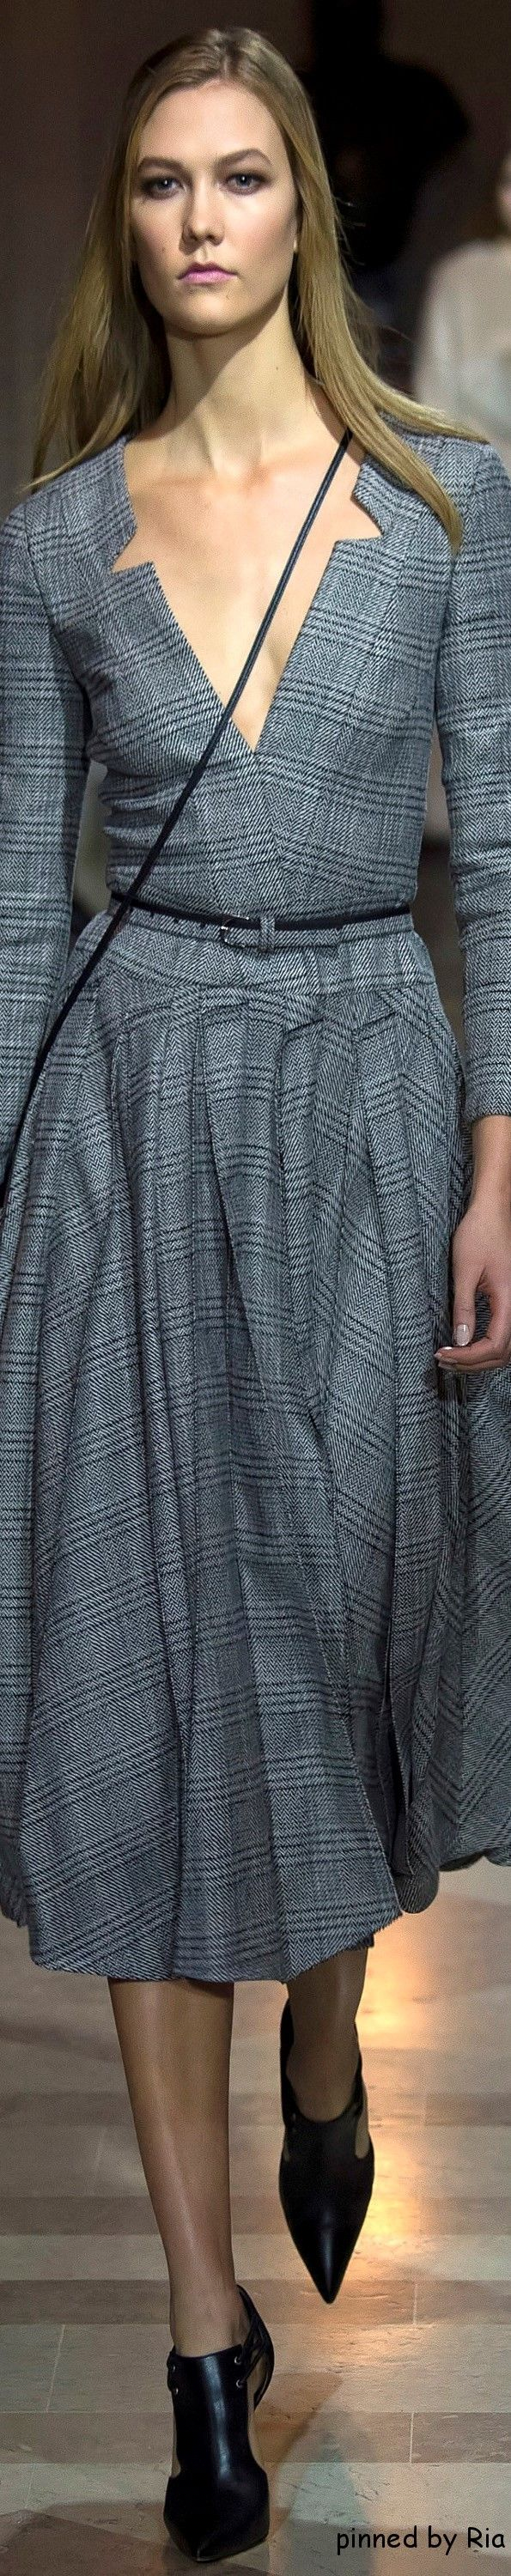 Carolina Herrera Fall 2016 RTW l gray dress women fashion outfit clothing style apparel @roressclothes closet ideas